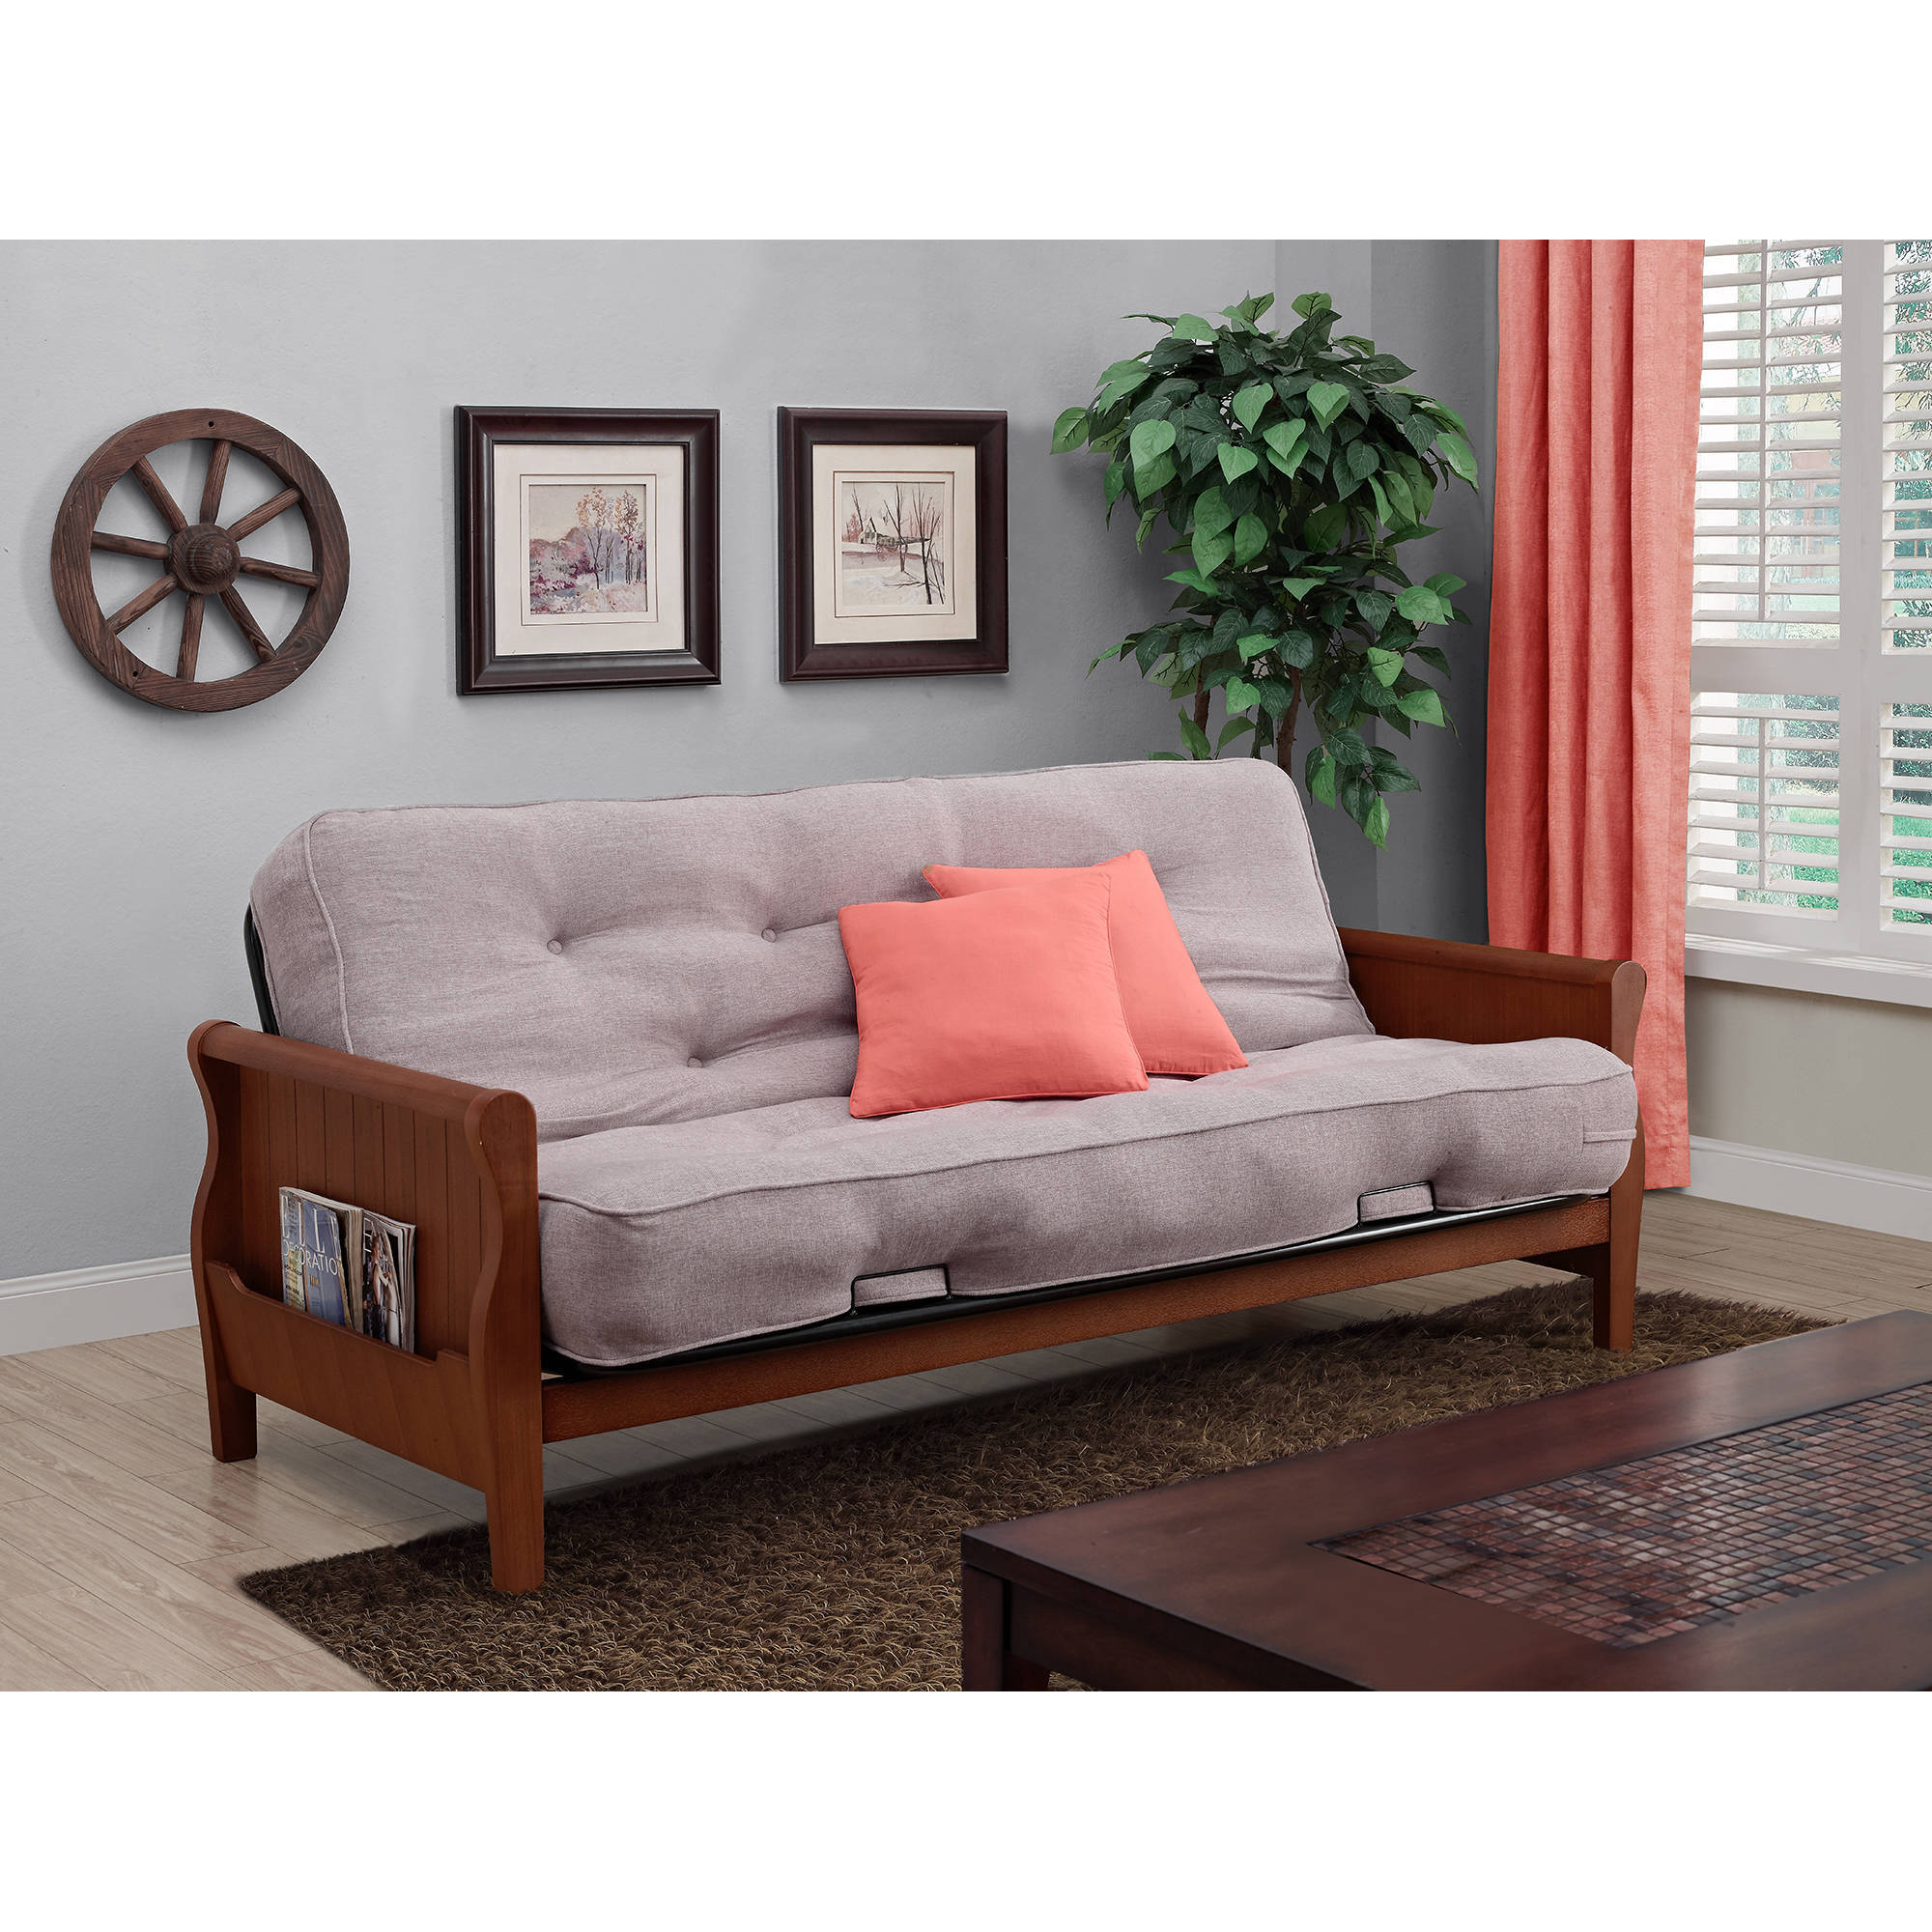 """Better Homes and Gardens Wood Arm Futon with 8"""" Coil Mattress, Taupe"""